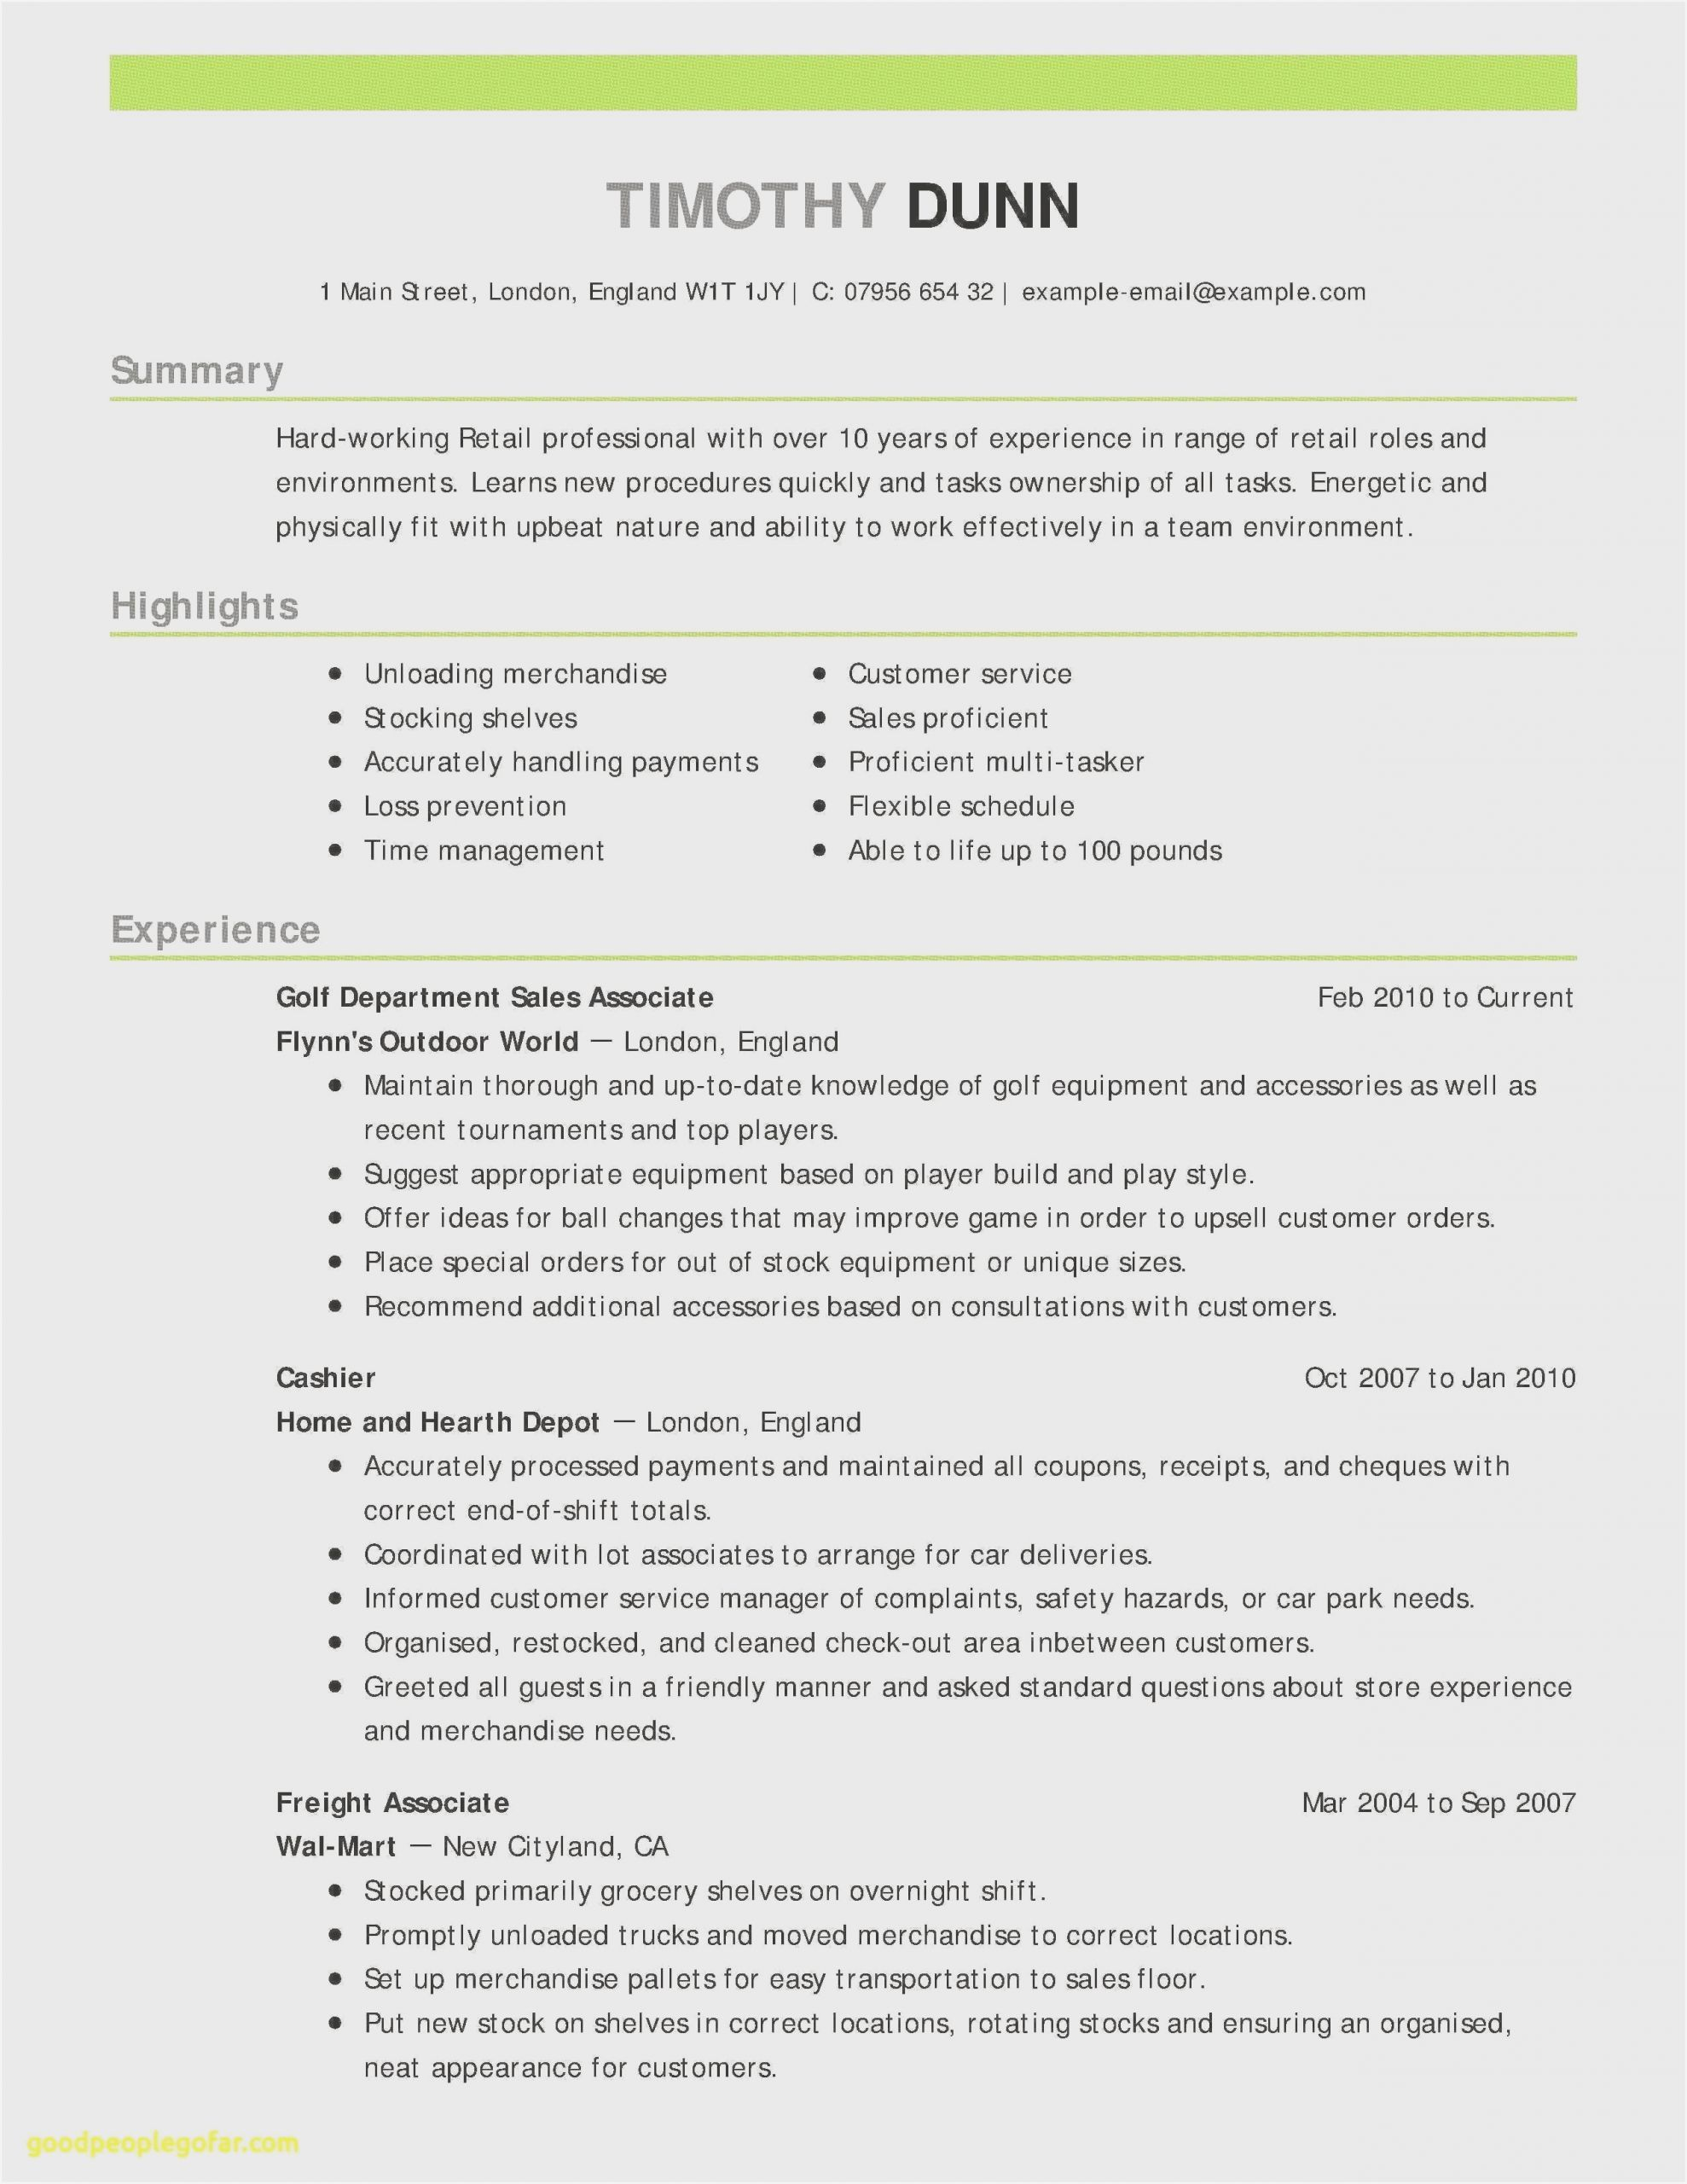 examples of professional resume templates sample best for experienced professionals cyber Resume Best Resume Templates For Experienced Professionals